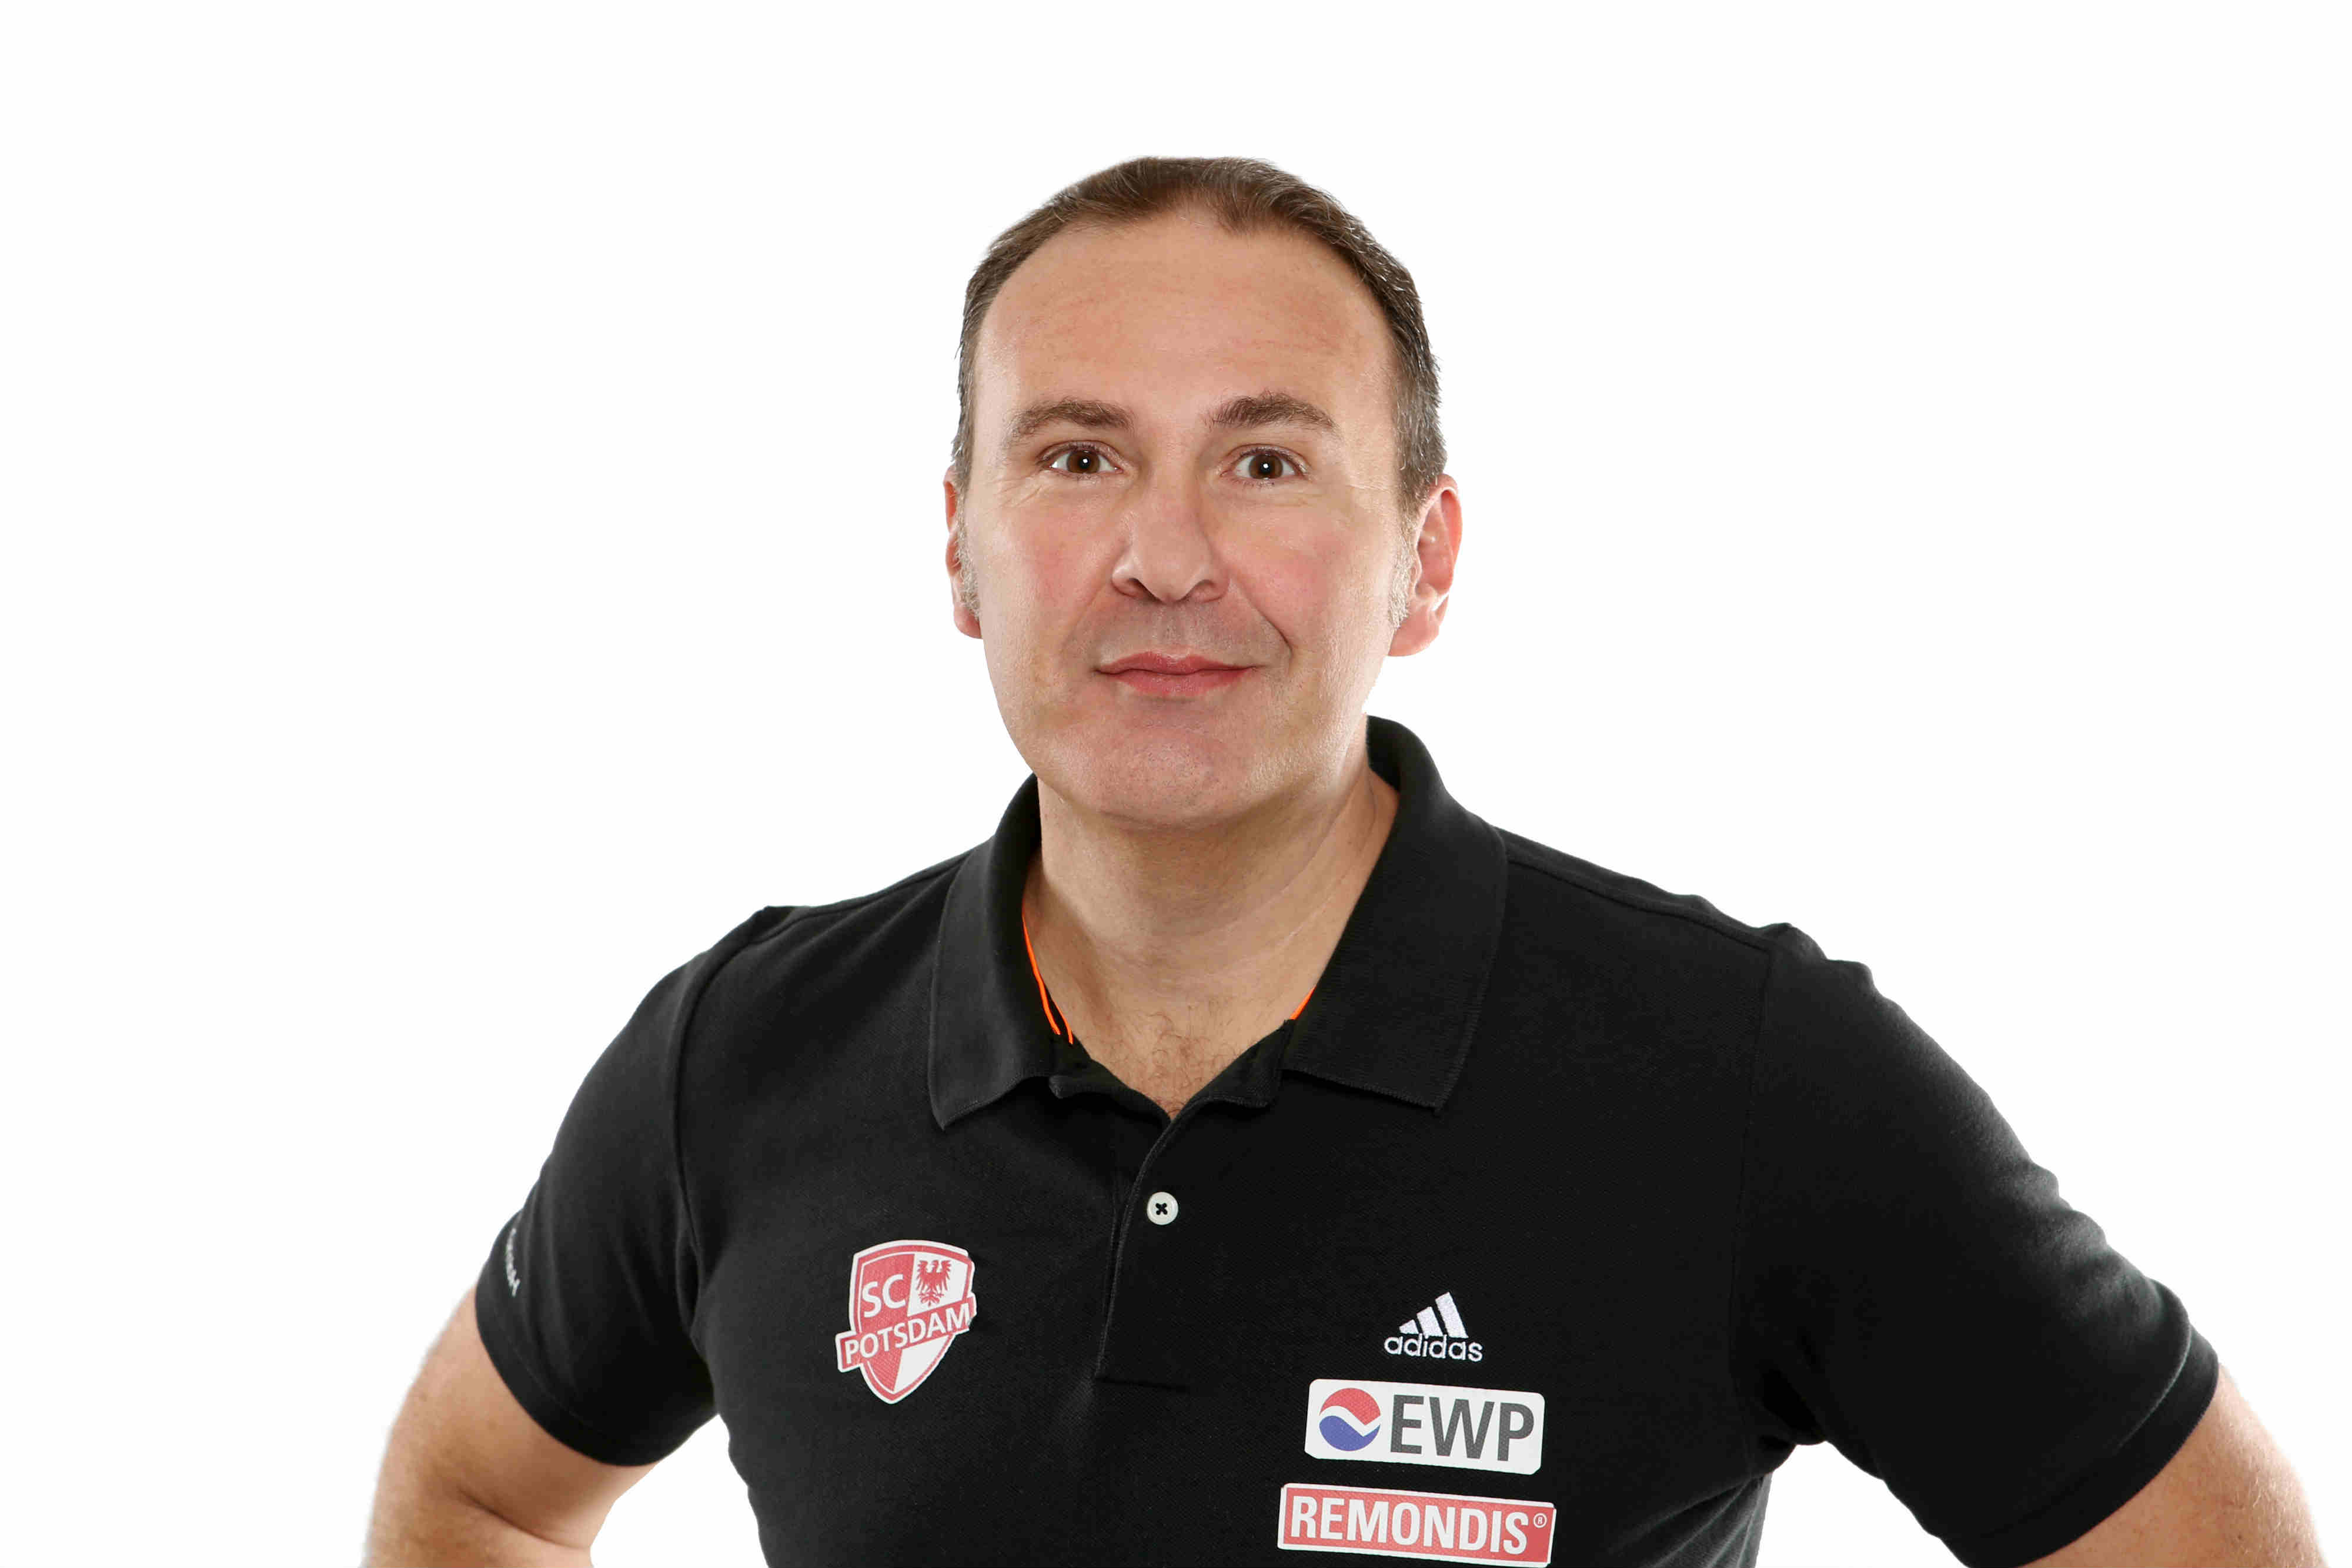 Alberto Salomoni Head Coach Volleyball SC Potsdam